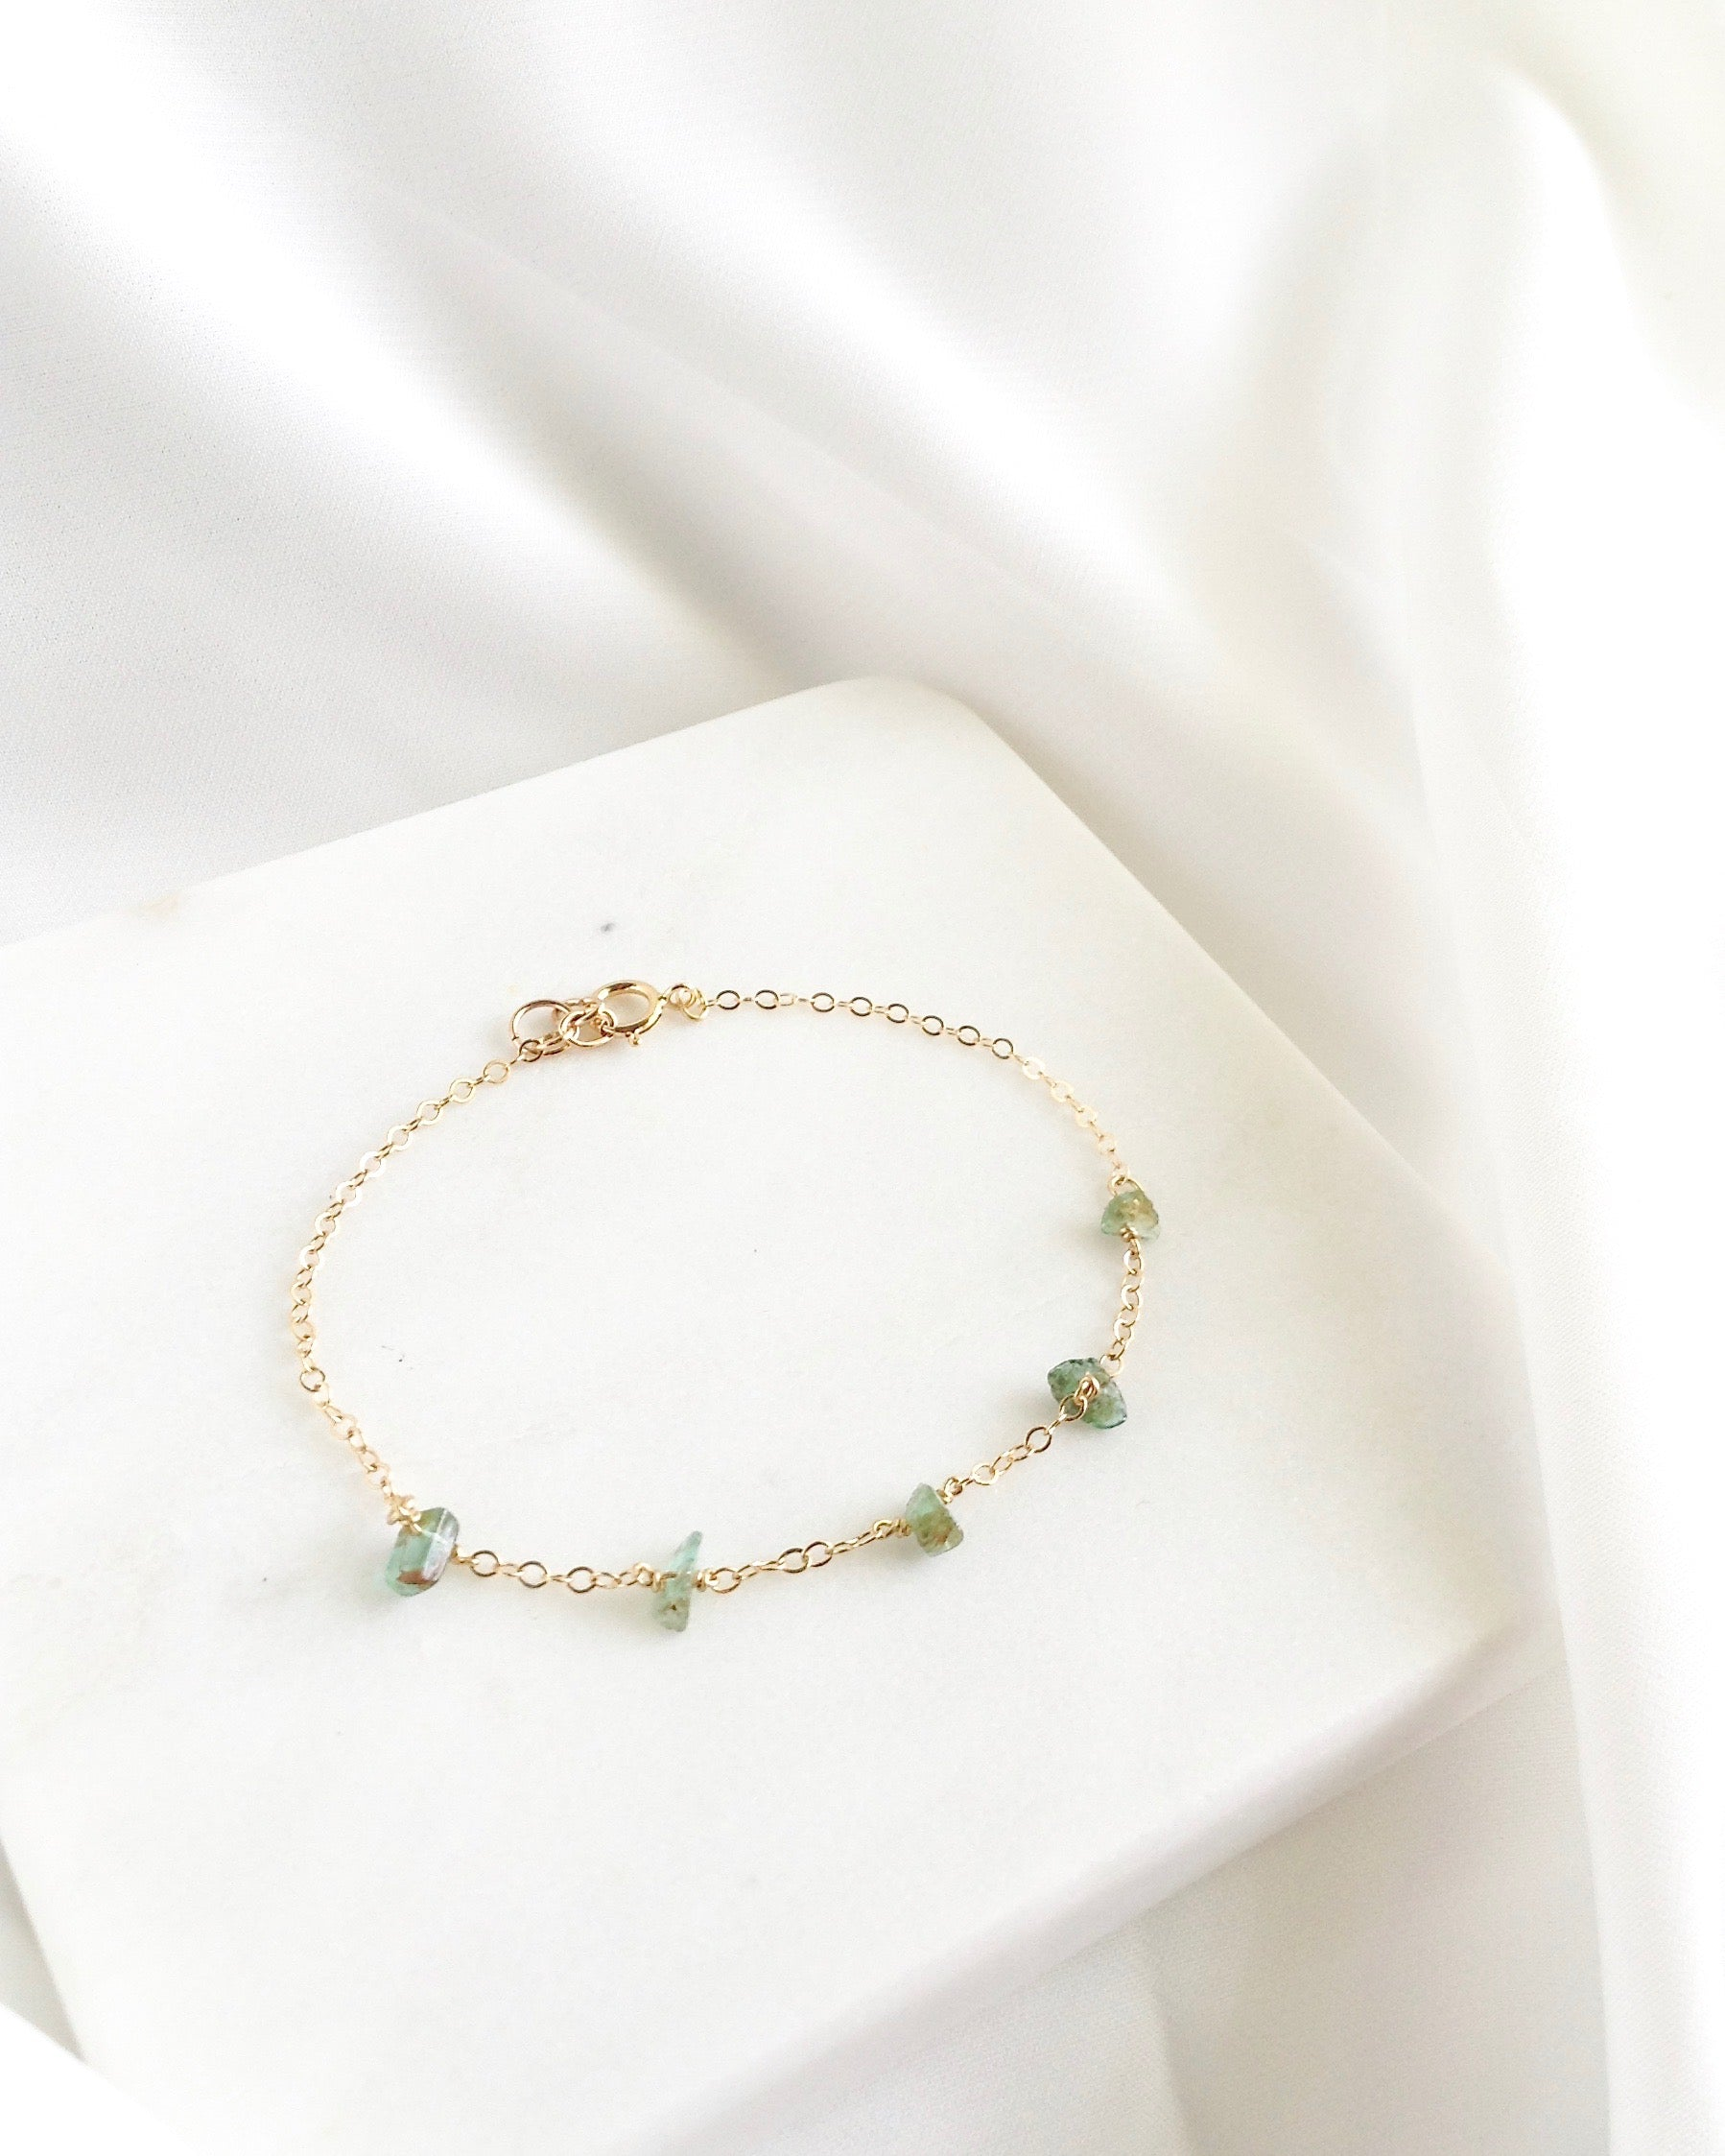 Colombian Emerald Bracelet in Gold Filled or Sterling Silver | IB Jewelry